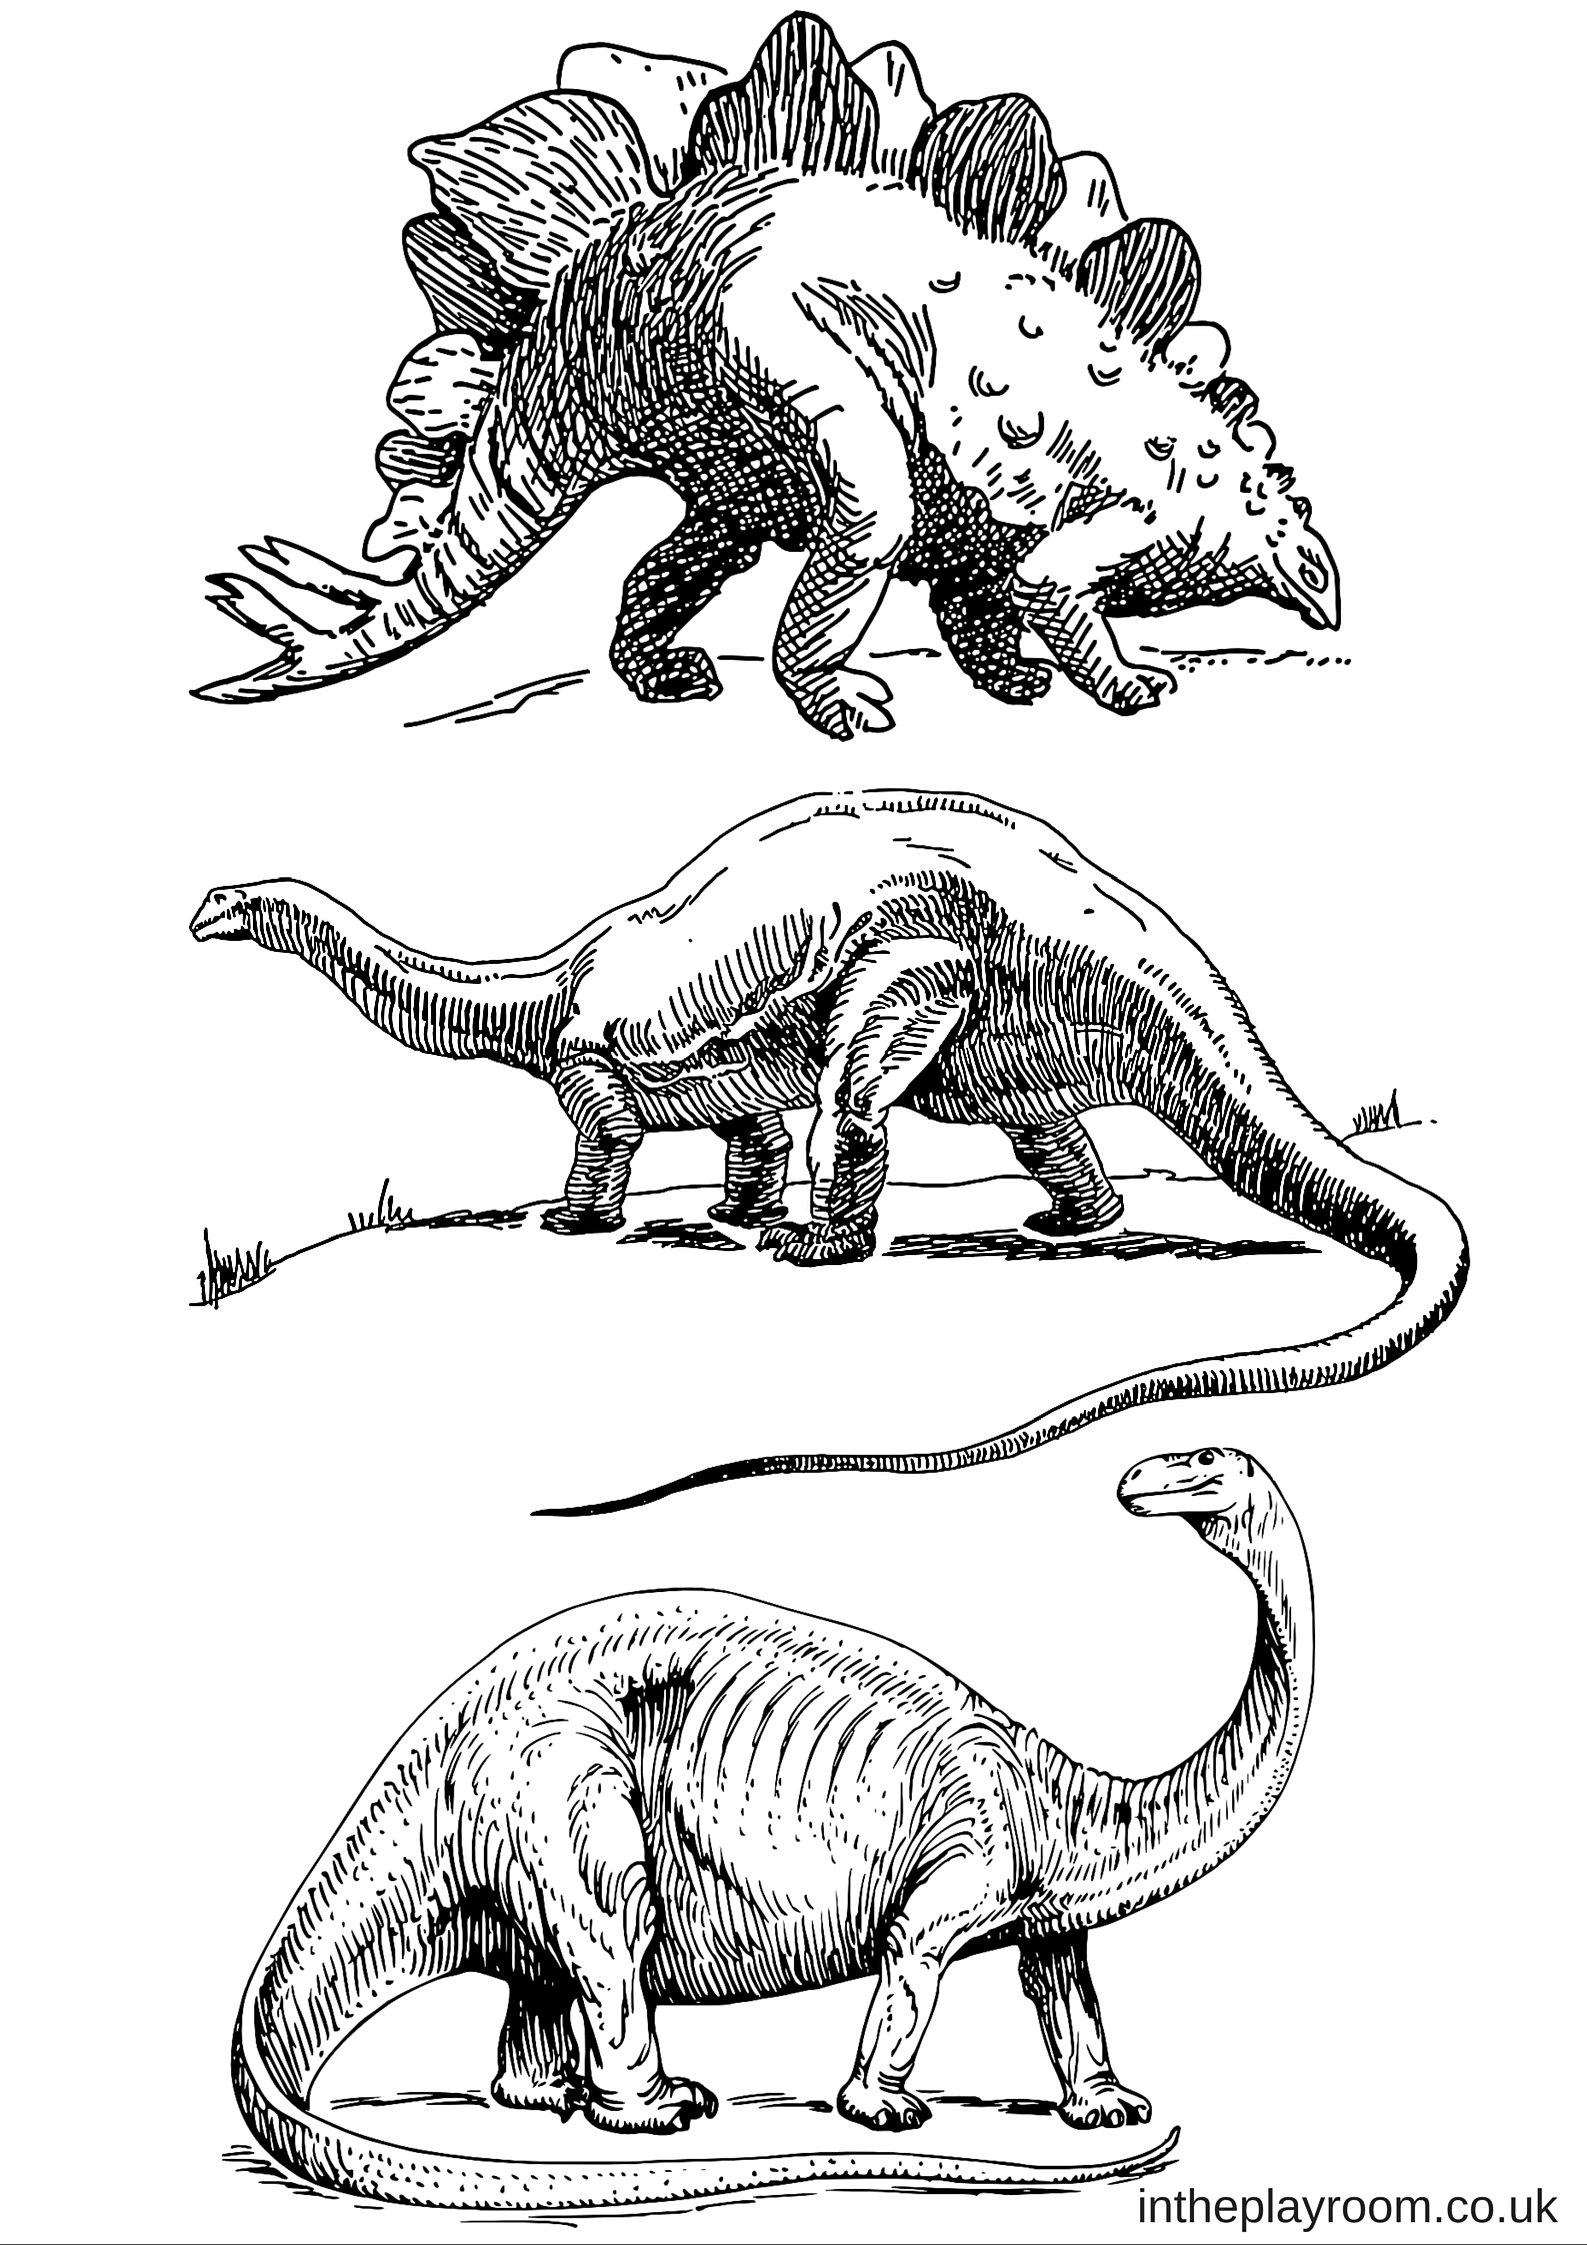 dinosaur coloring images baby dinosaur coloring pages for preschoolers activity images dinosaur coloring